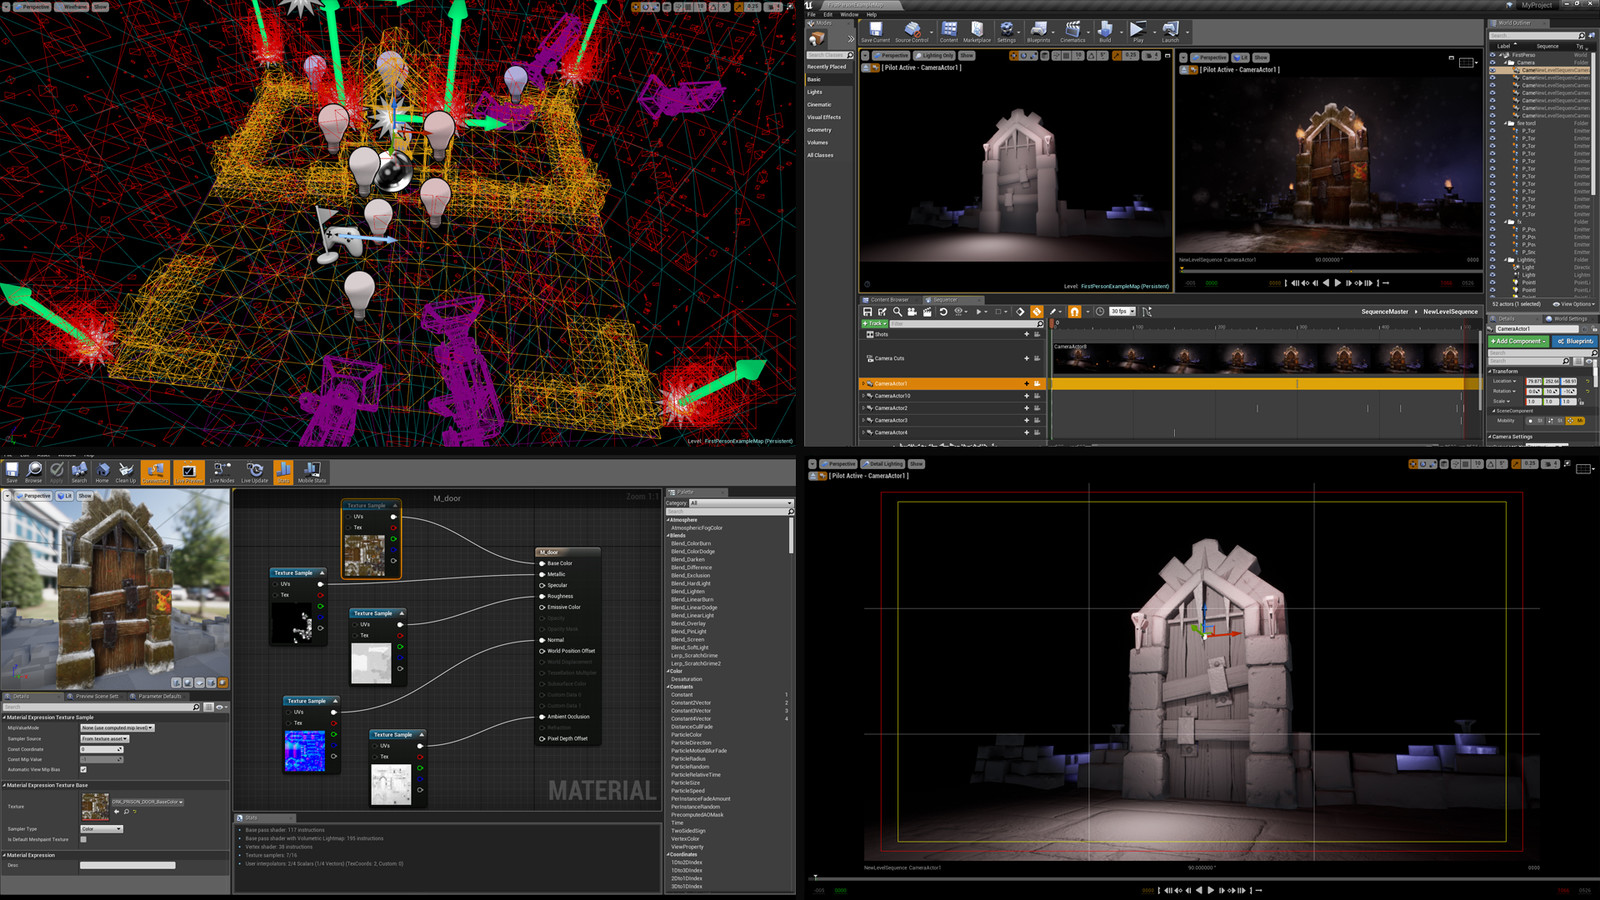 Unreal Engine 4 - Material setup, Lighting and Cameras. Created 8 cameras and used Sequencer to capture and export the clips.